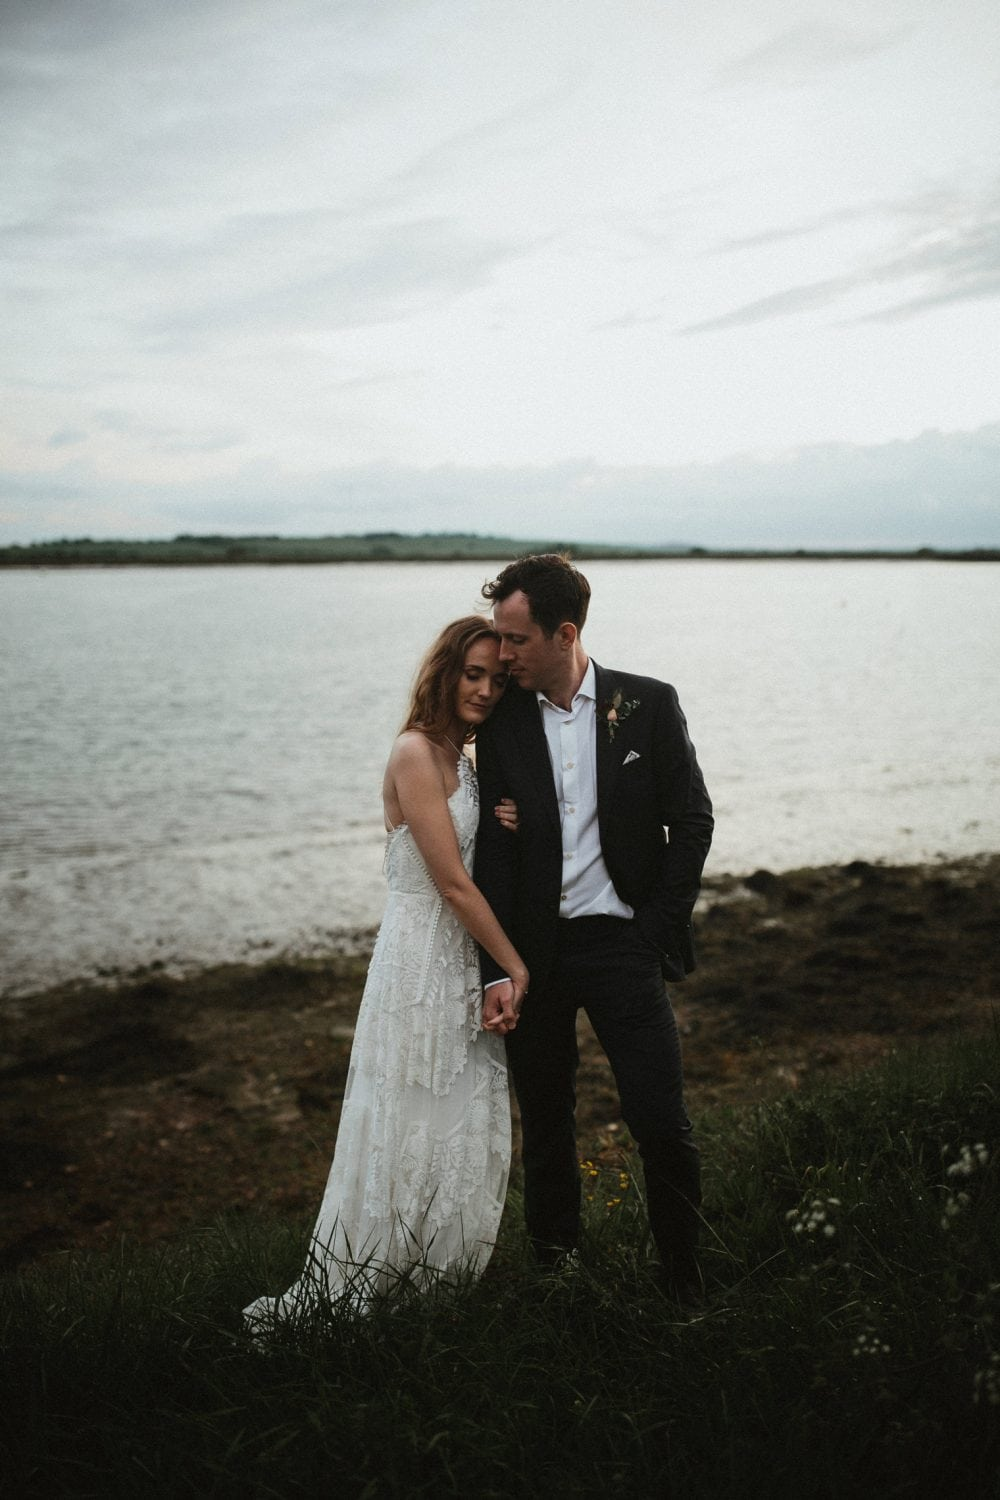 Couple together by estuary for their outdoor wedding in essex